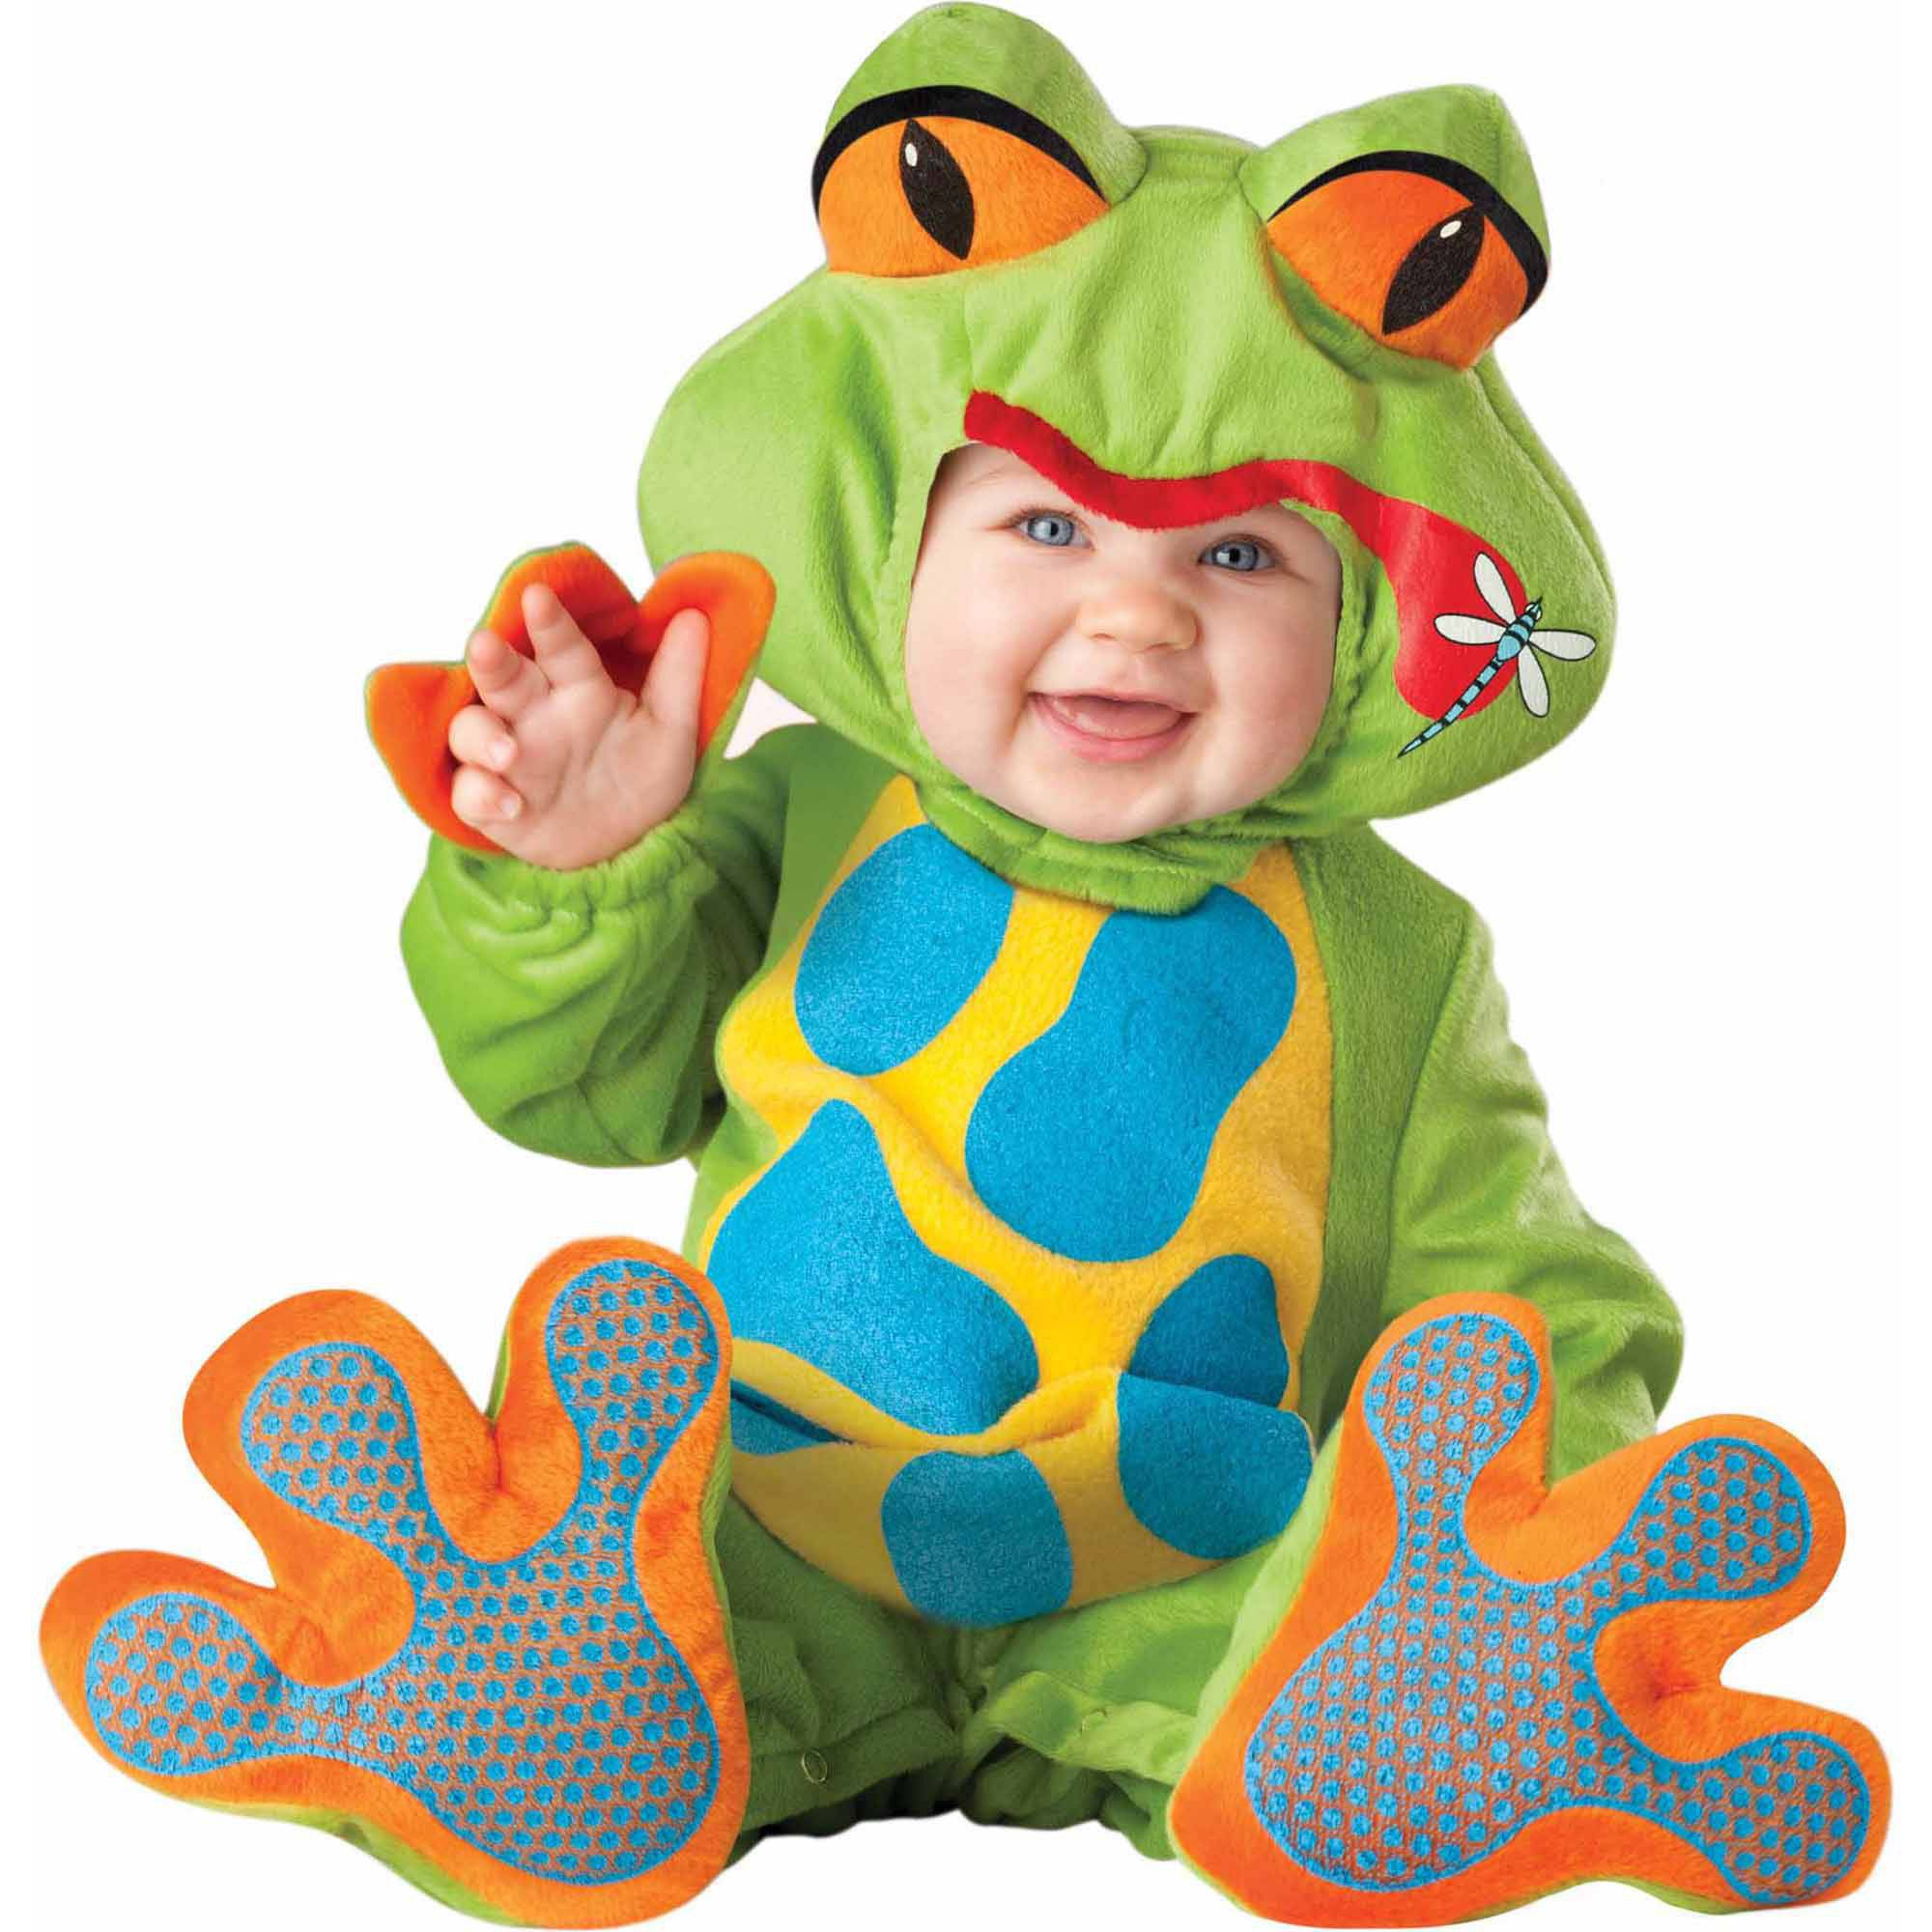 Lil' Froggy Boys' Toddler Halloween Costume